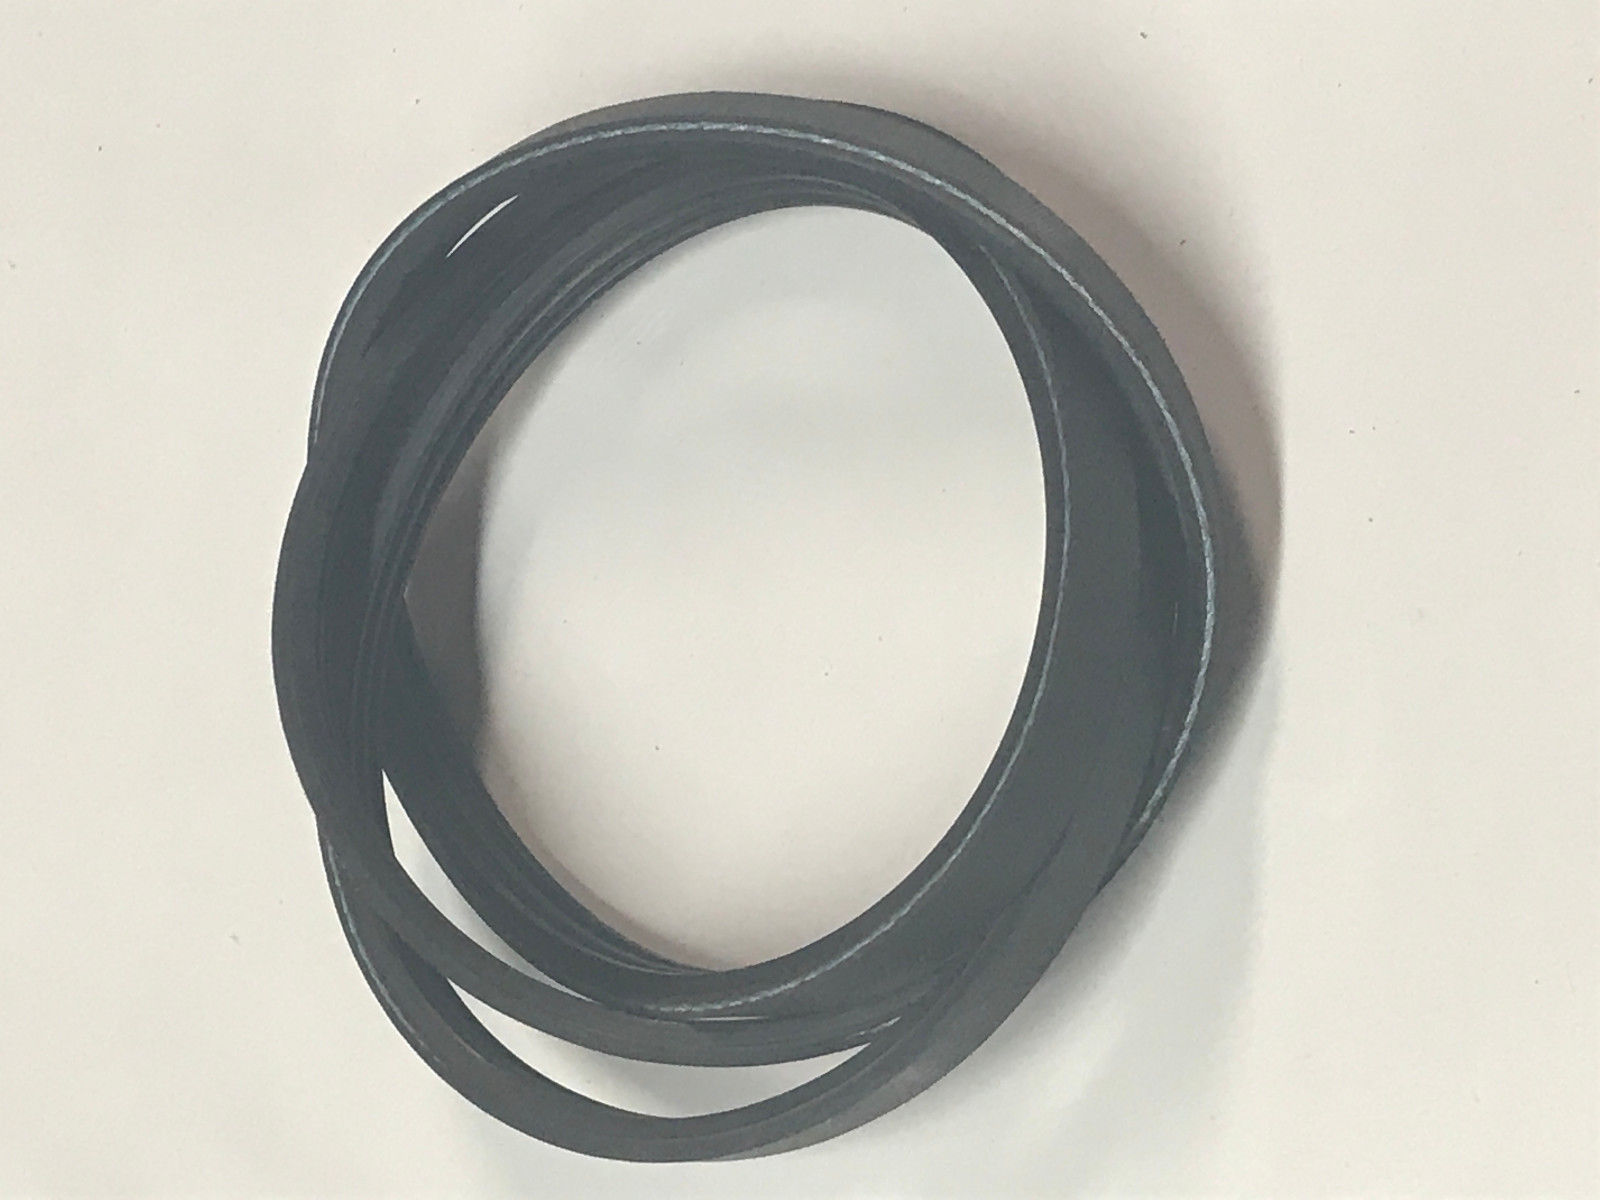 Primary image for *New Replacement Drive BELT* for DIAMOND TECH / LASER BANDSAW BAND SAW 5000